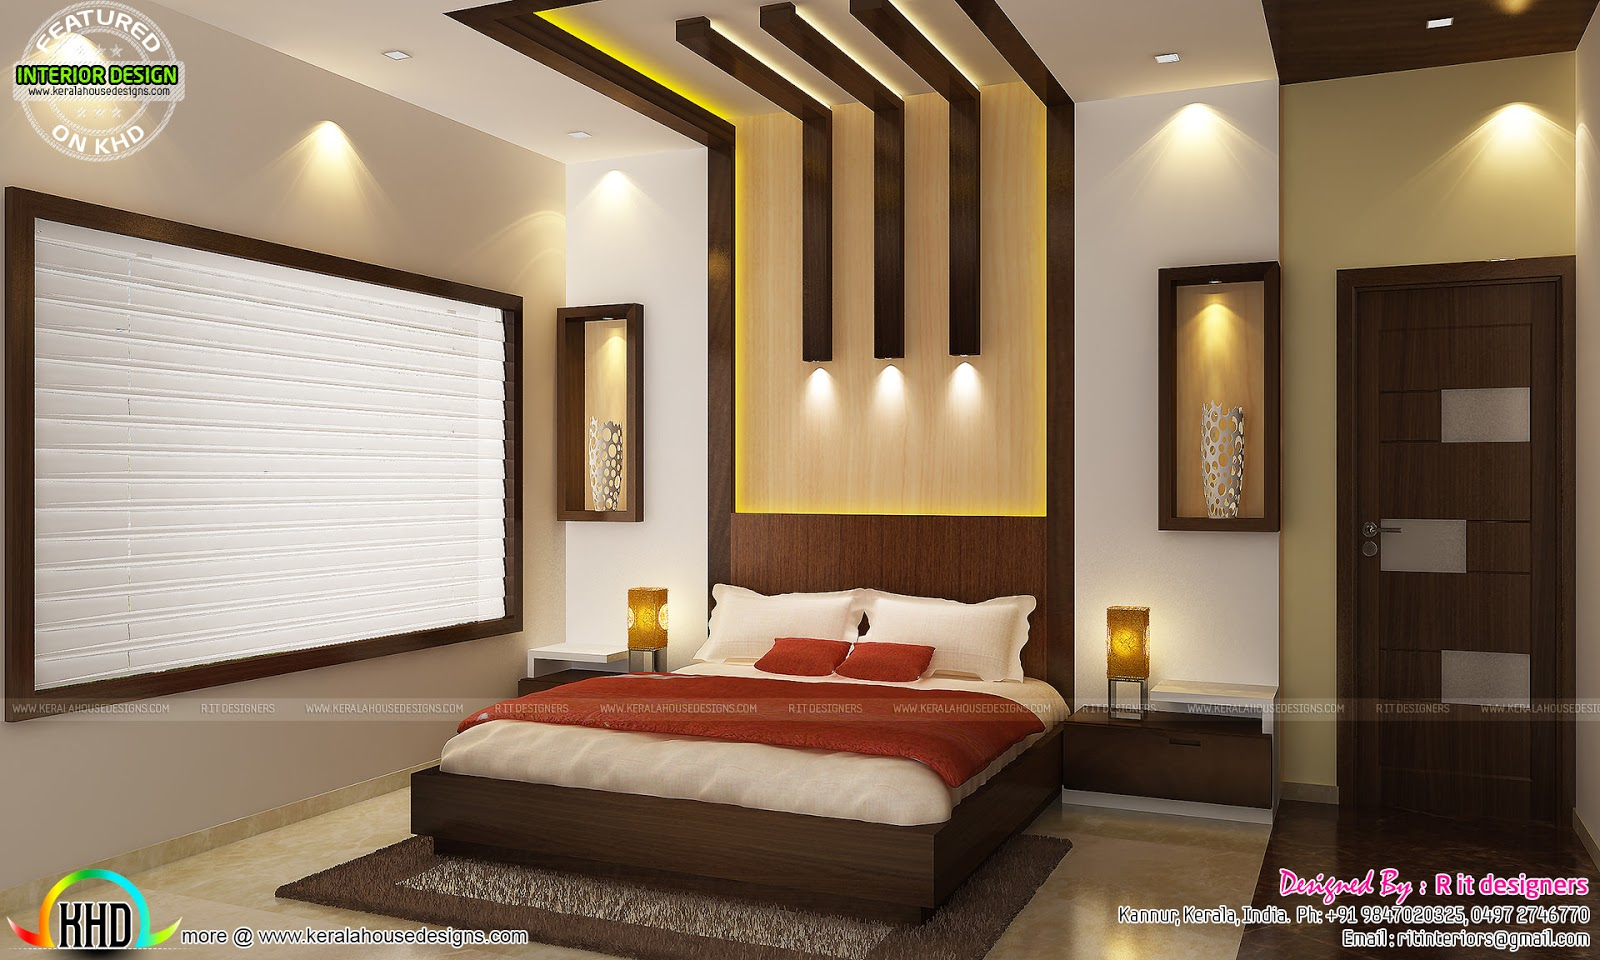 Kitchen living bedroom dining interior decor kerala for Kitchen room interior design ideas